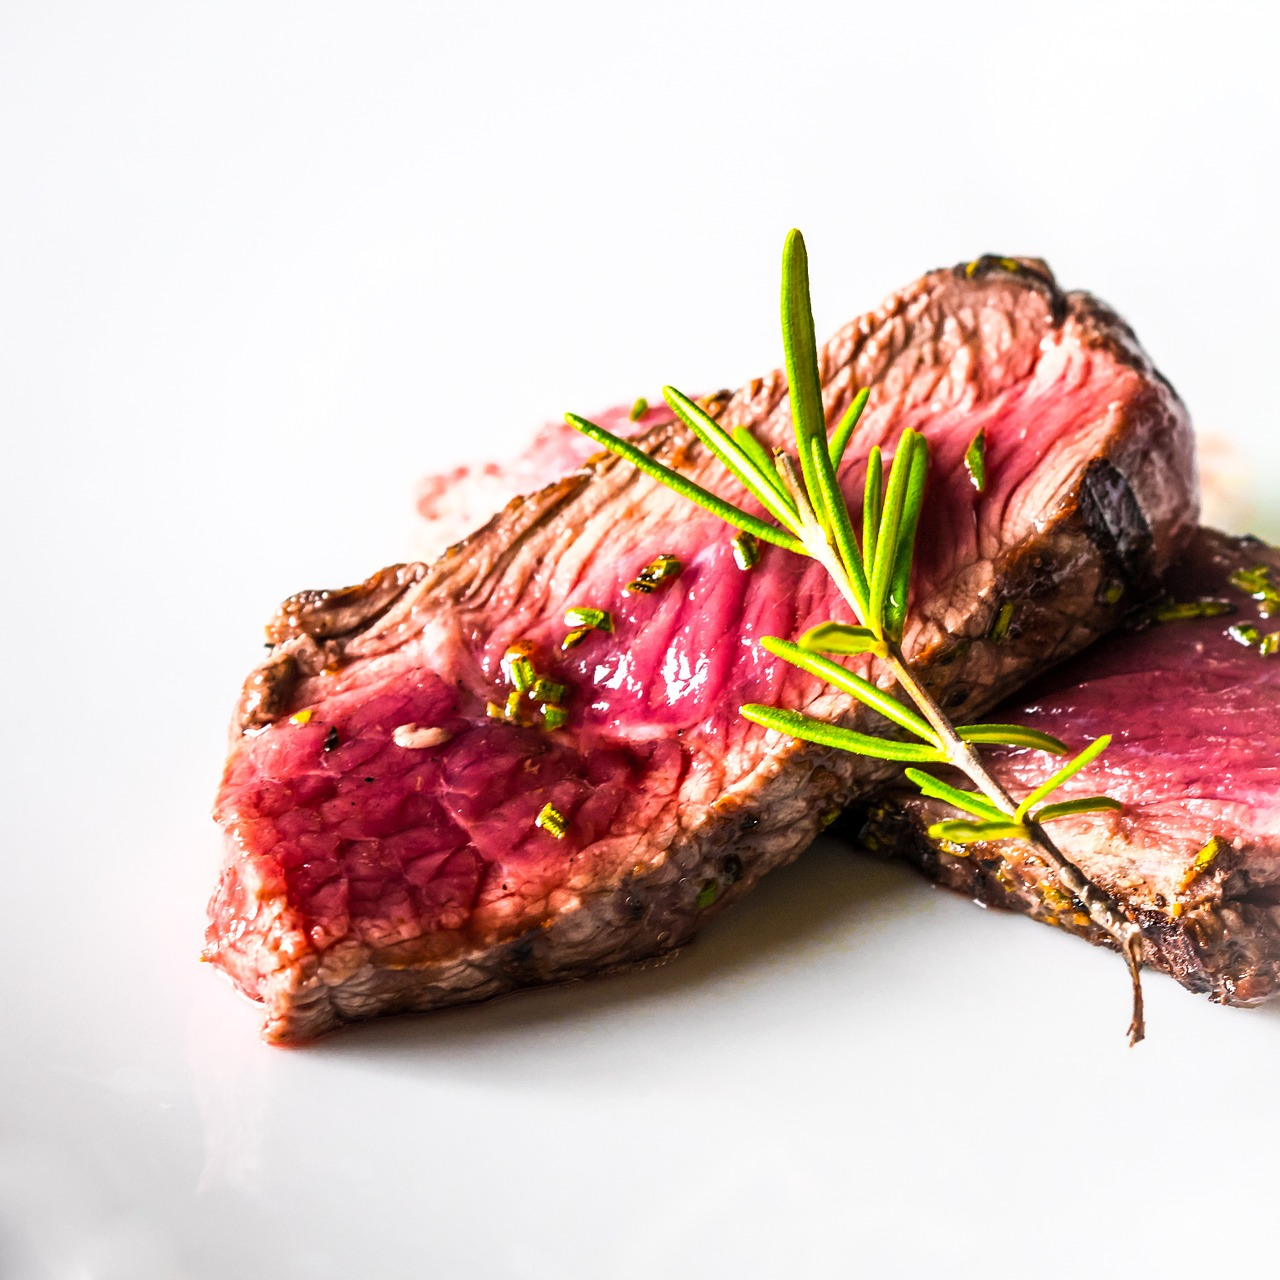 Two slices of rare cooked steak with garnish on white background